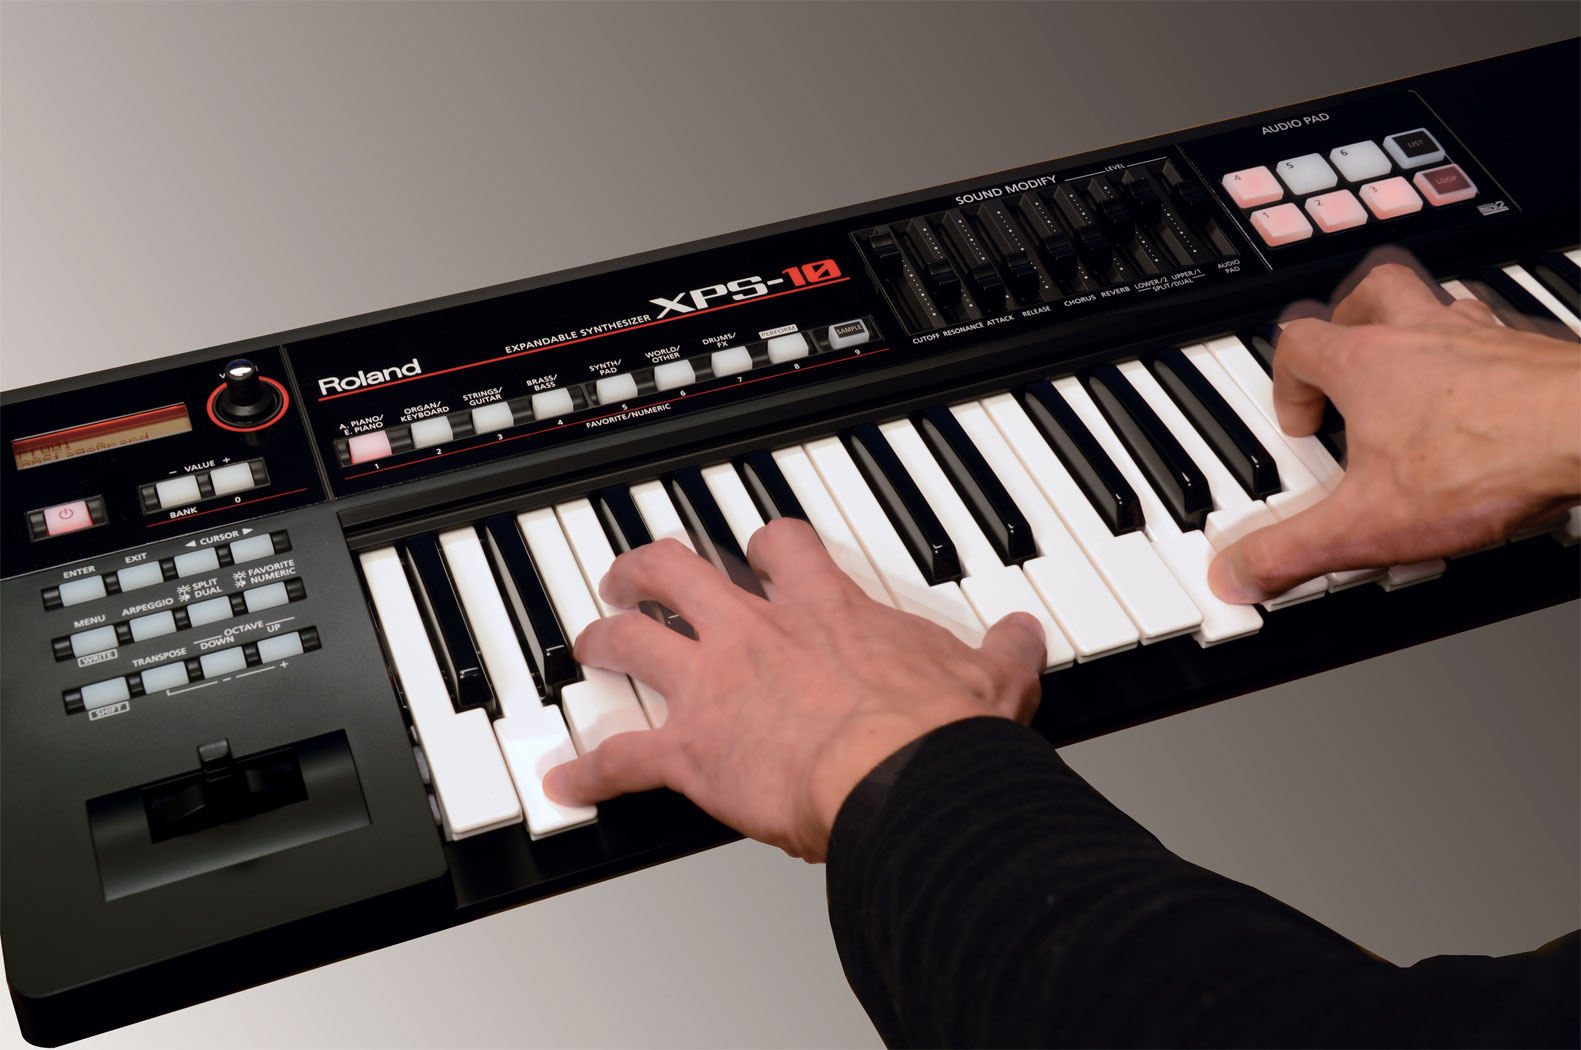 roland xps 10 expandable synthesizer rh id roland com XPS 11 dell xps 10 user manual